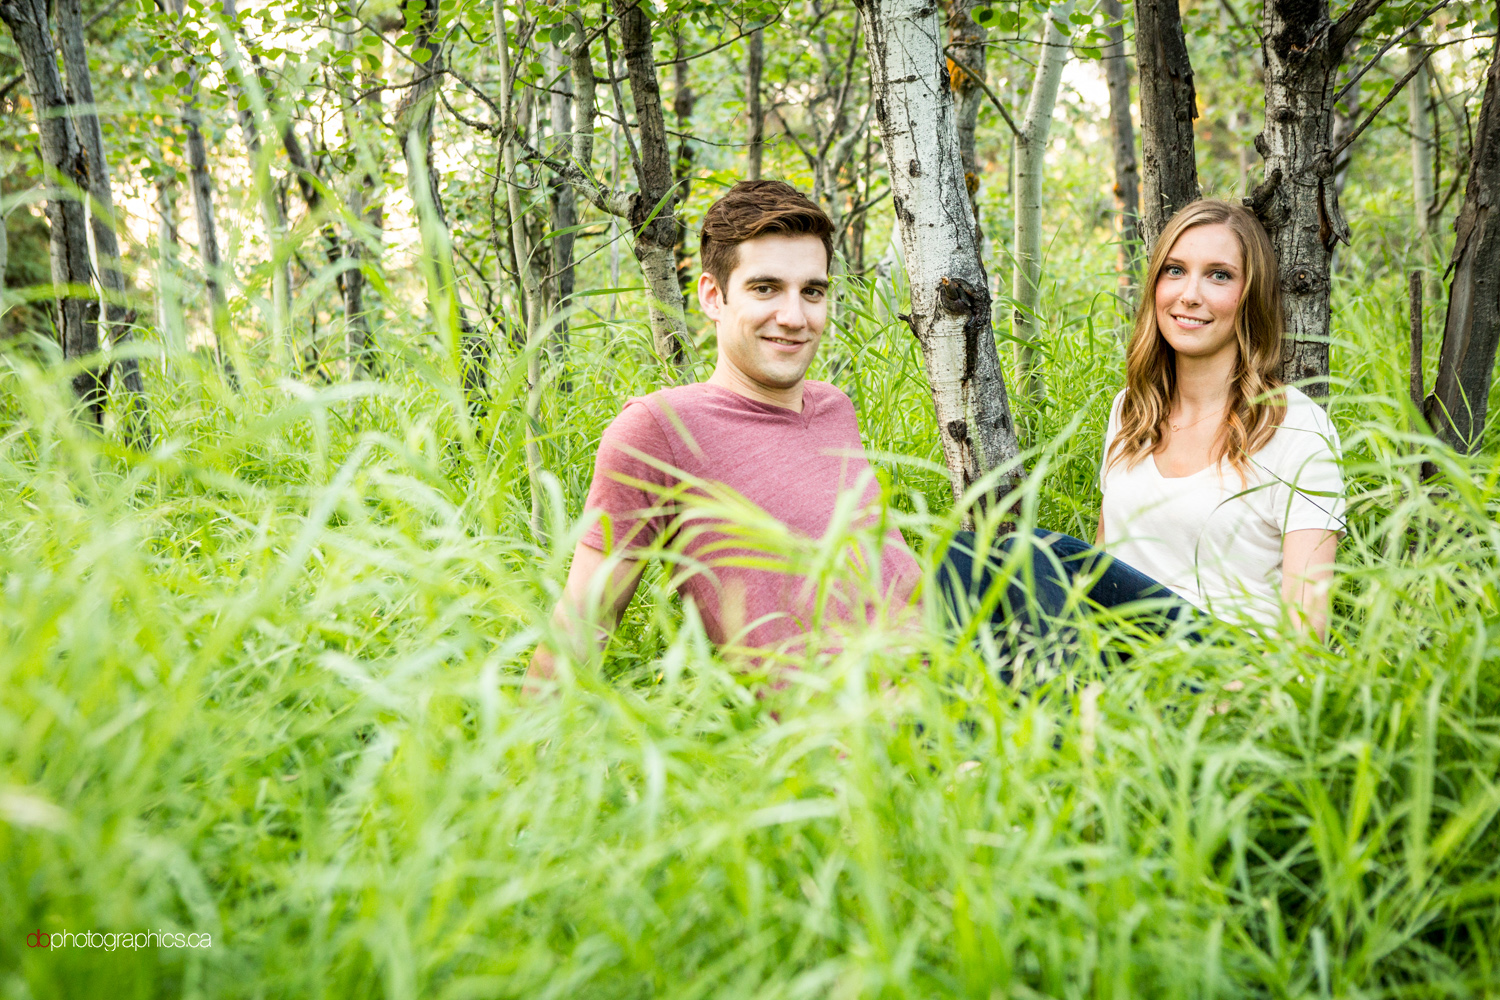 Ben & Melissa - Engagement Session - 20140713 - 0088.jpg